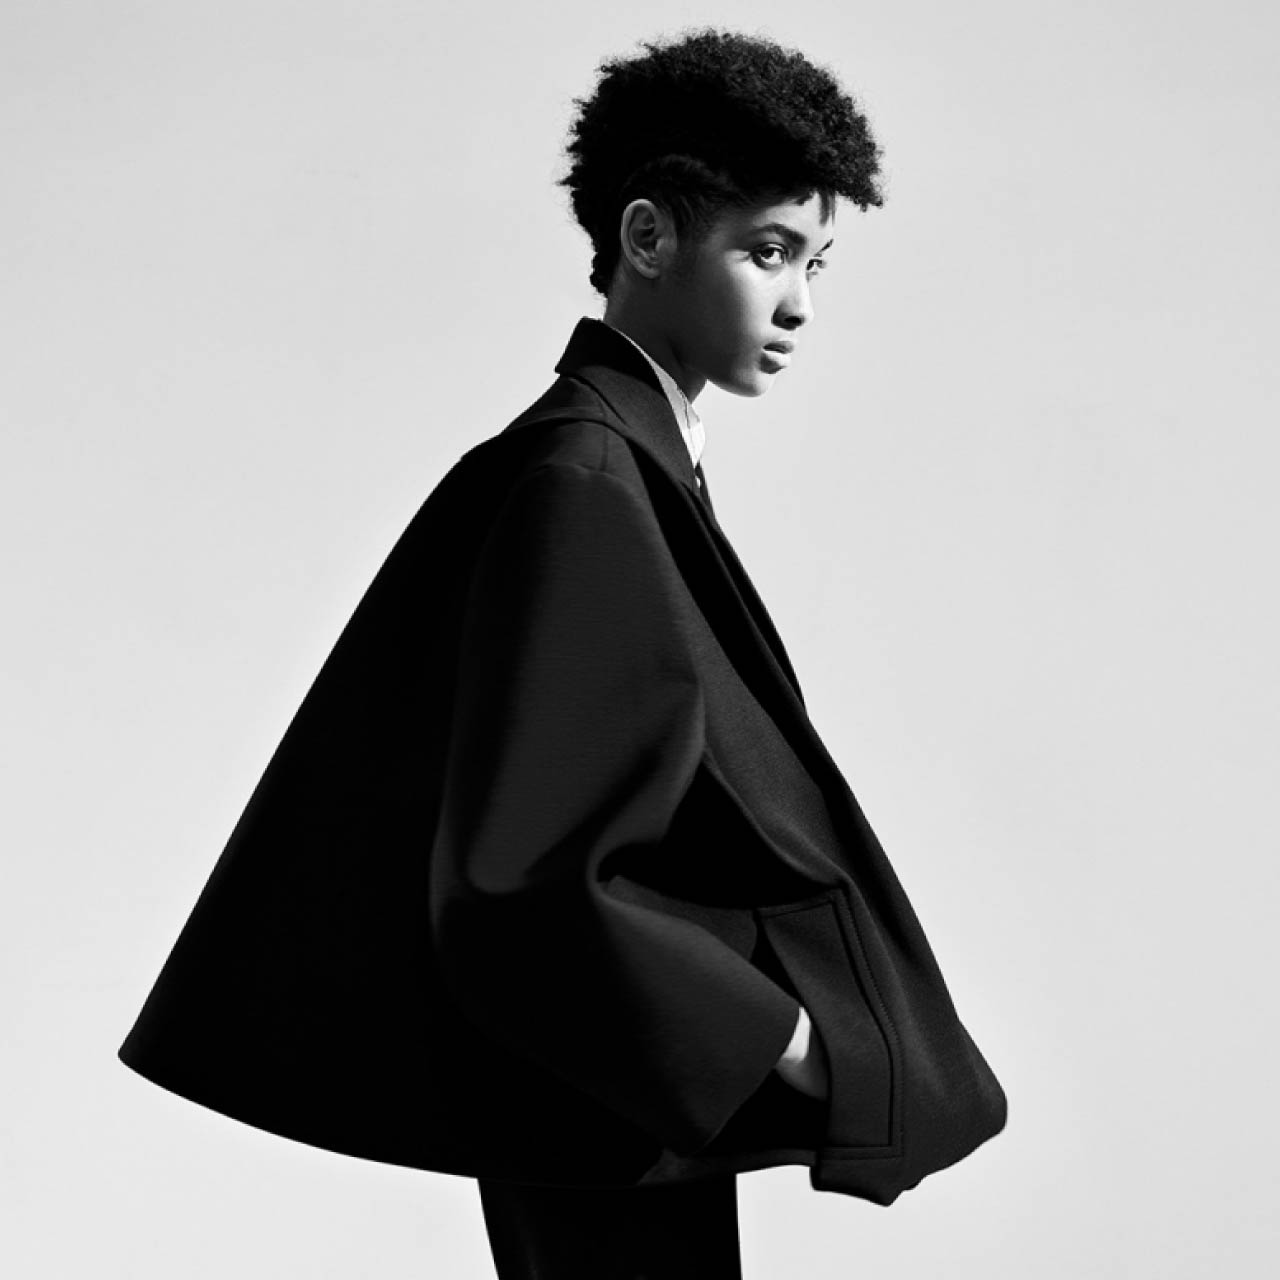 Couture Sensibilities at Botter and Nina Ricci | The Cutting Class. Nina Ricci, SS20. Black swing coat.